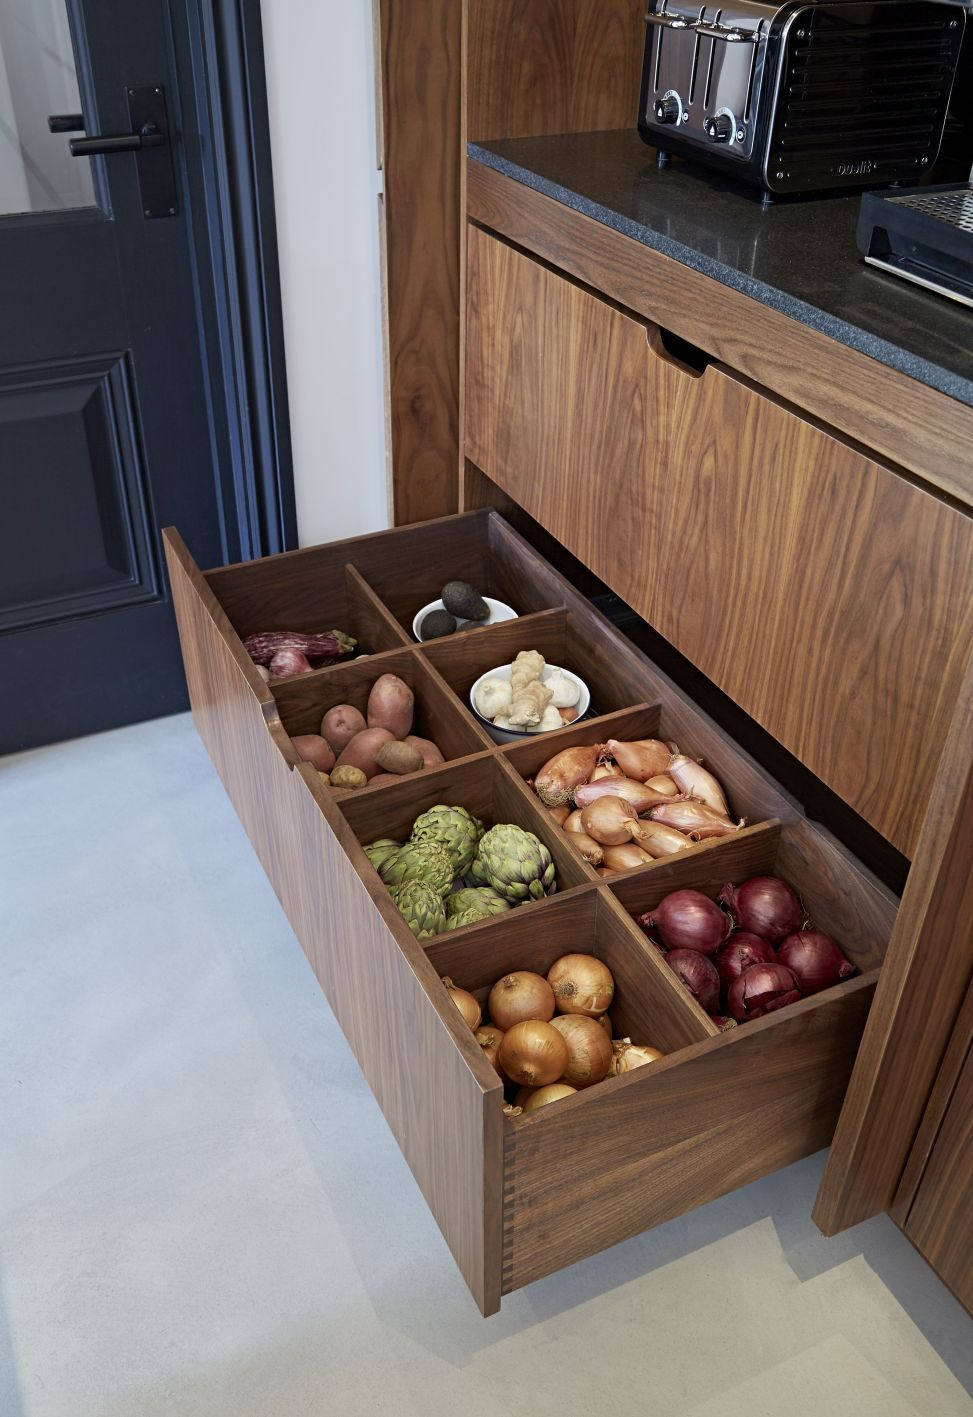 Kitchen Shelf to Store Fresh Produce